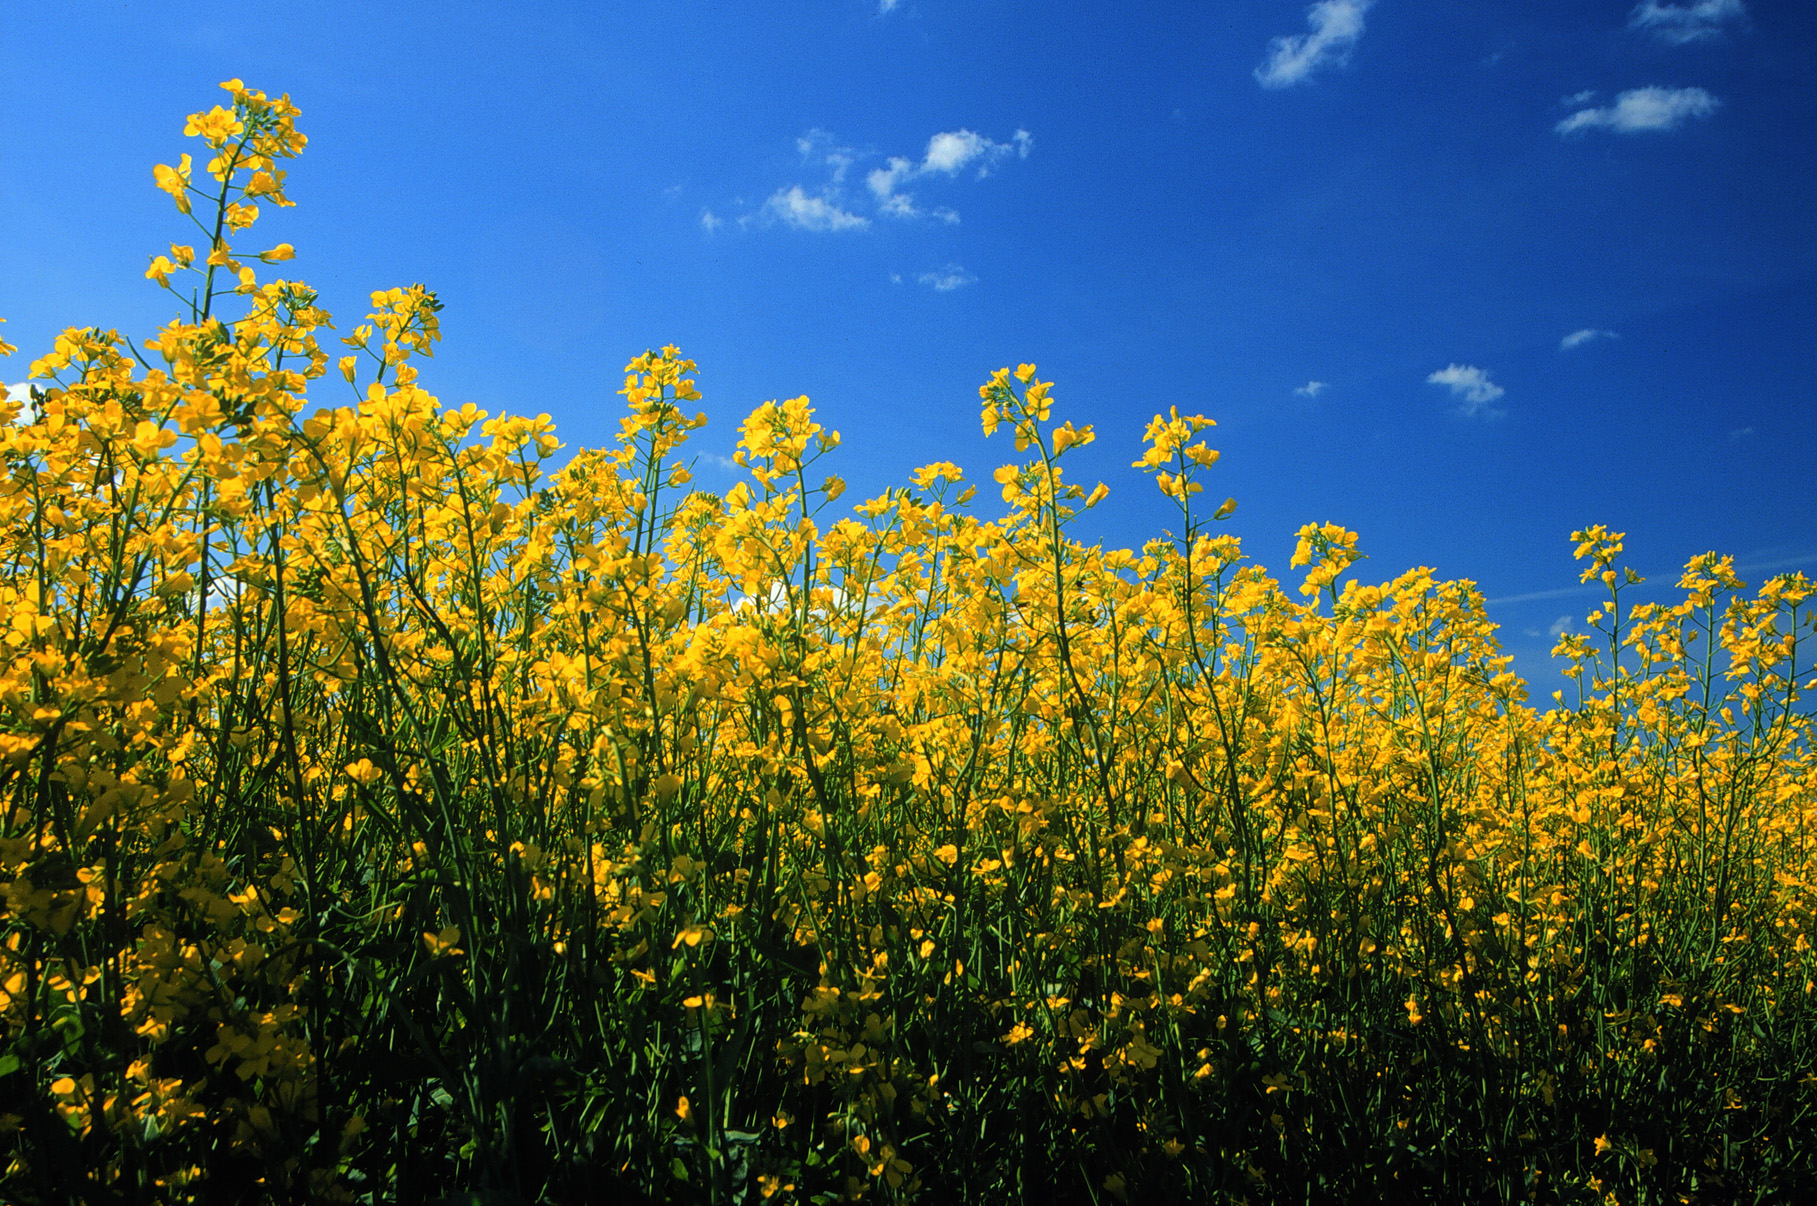 Fields & Flowers - Canola Council of Canada